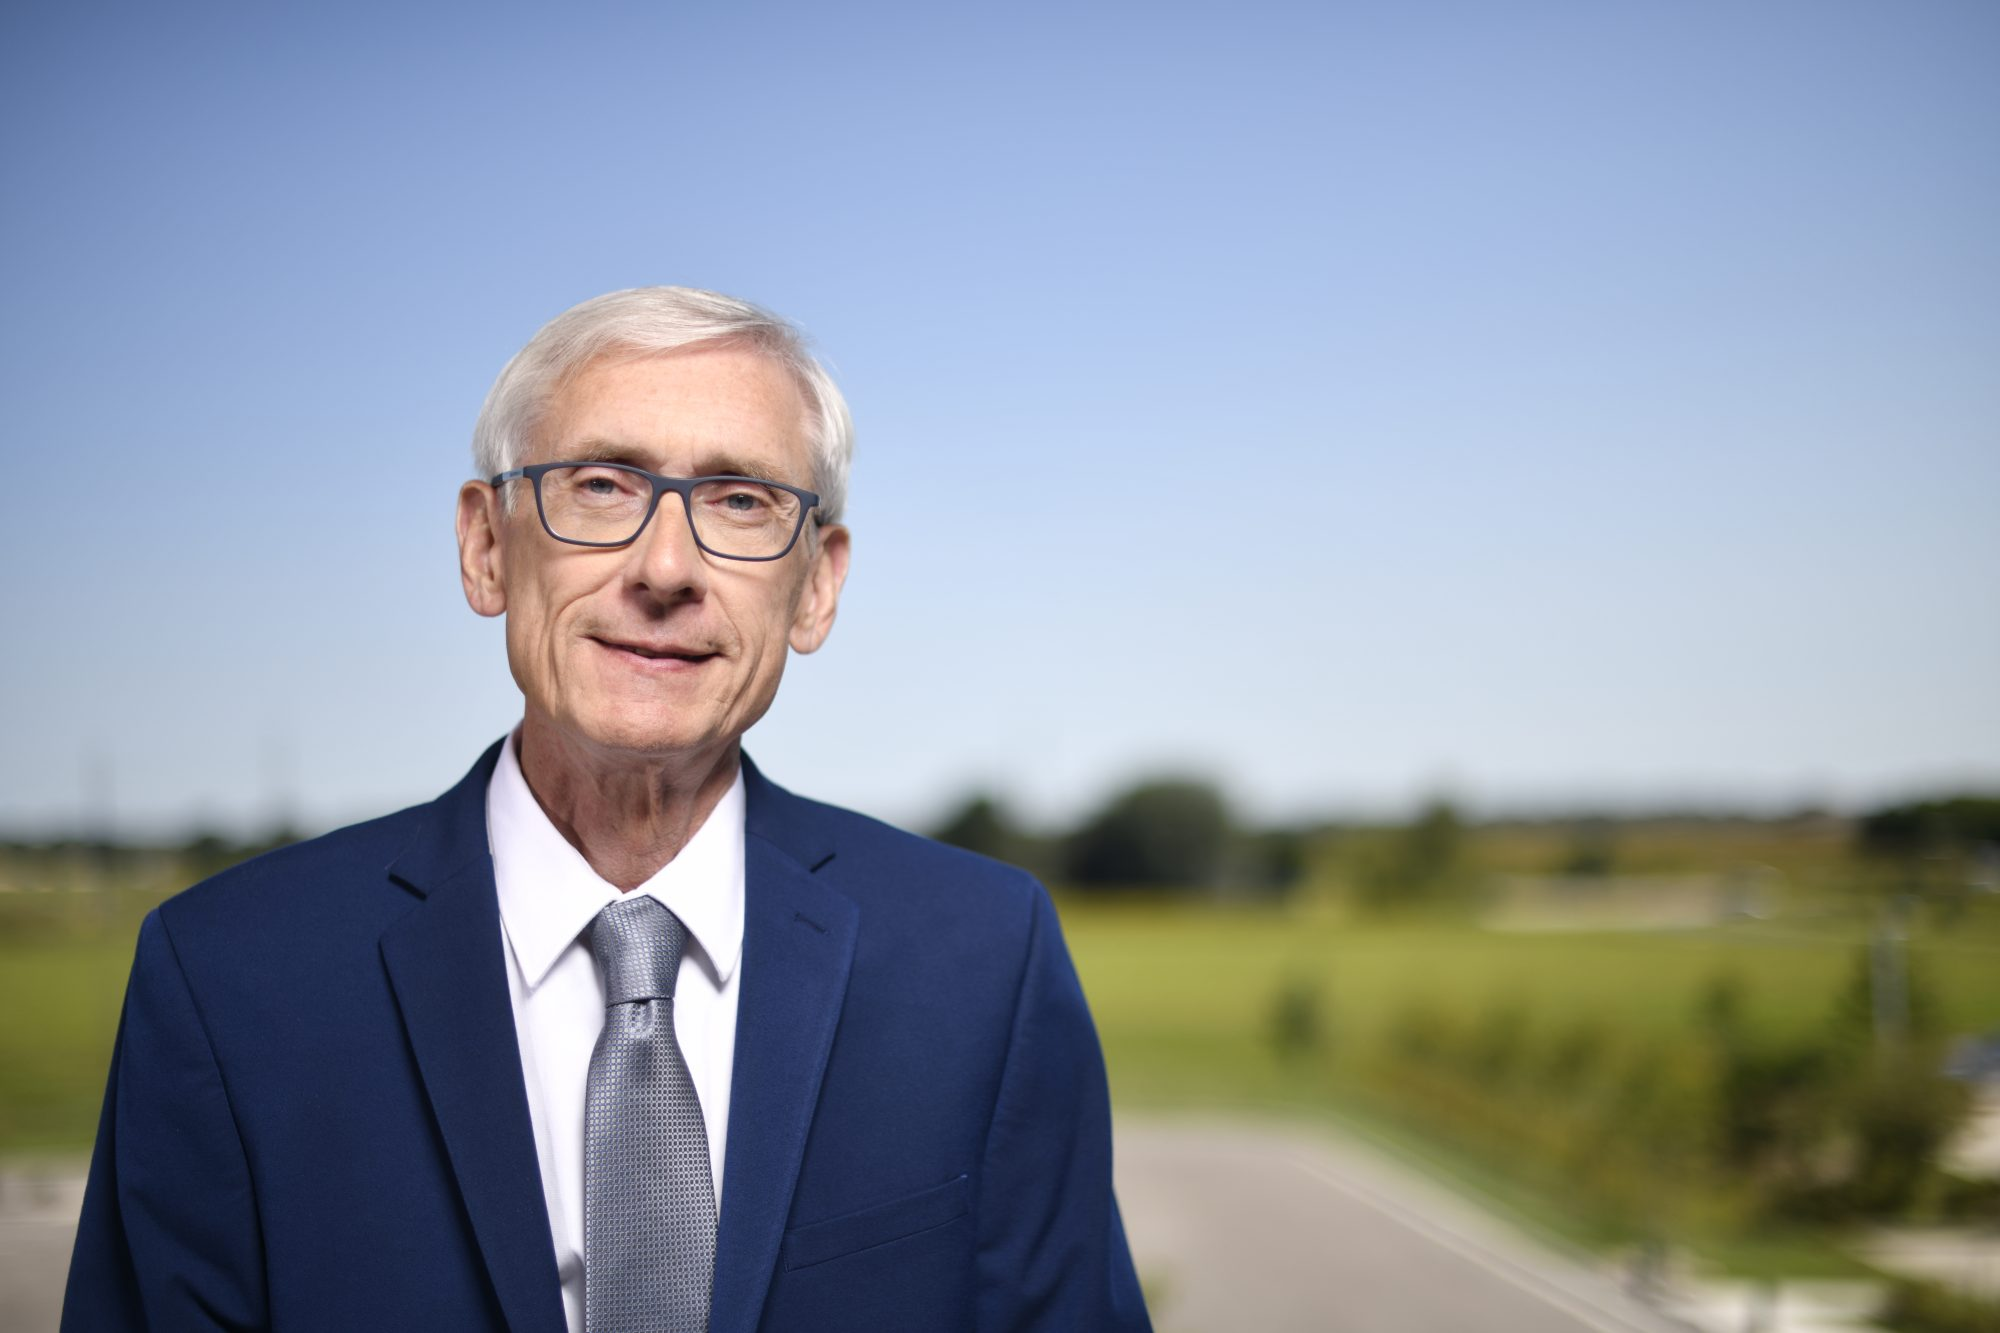 Gov. Evers Announces $32 Million to Support COVID-19 Testing at UW Campuses